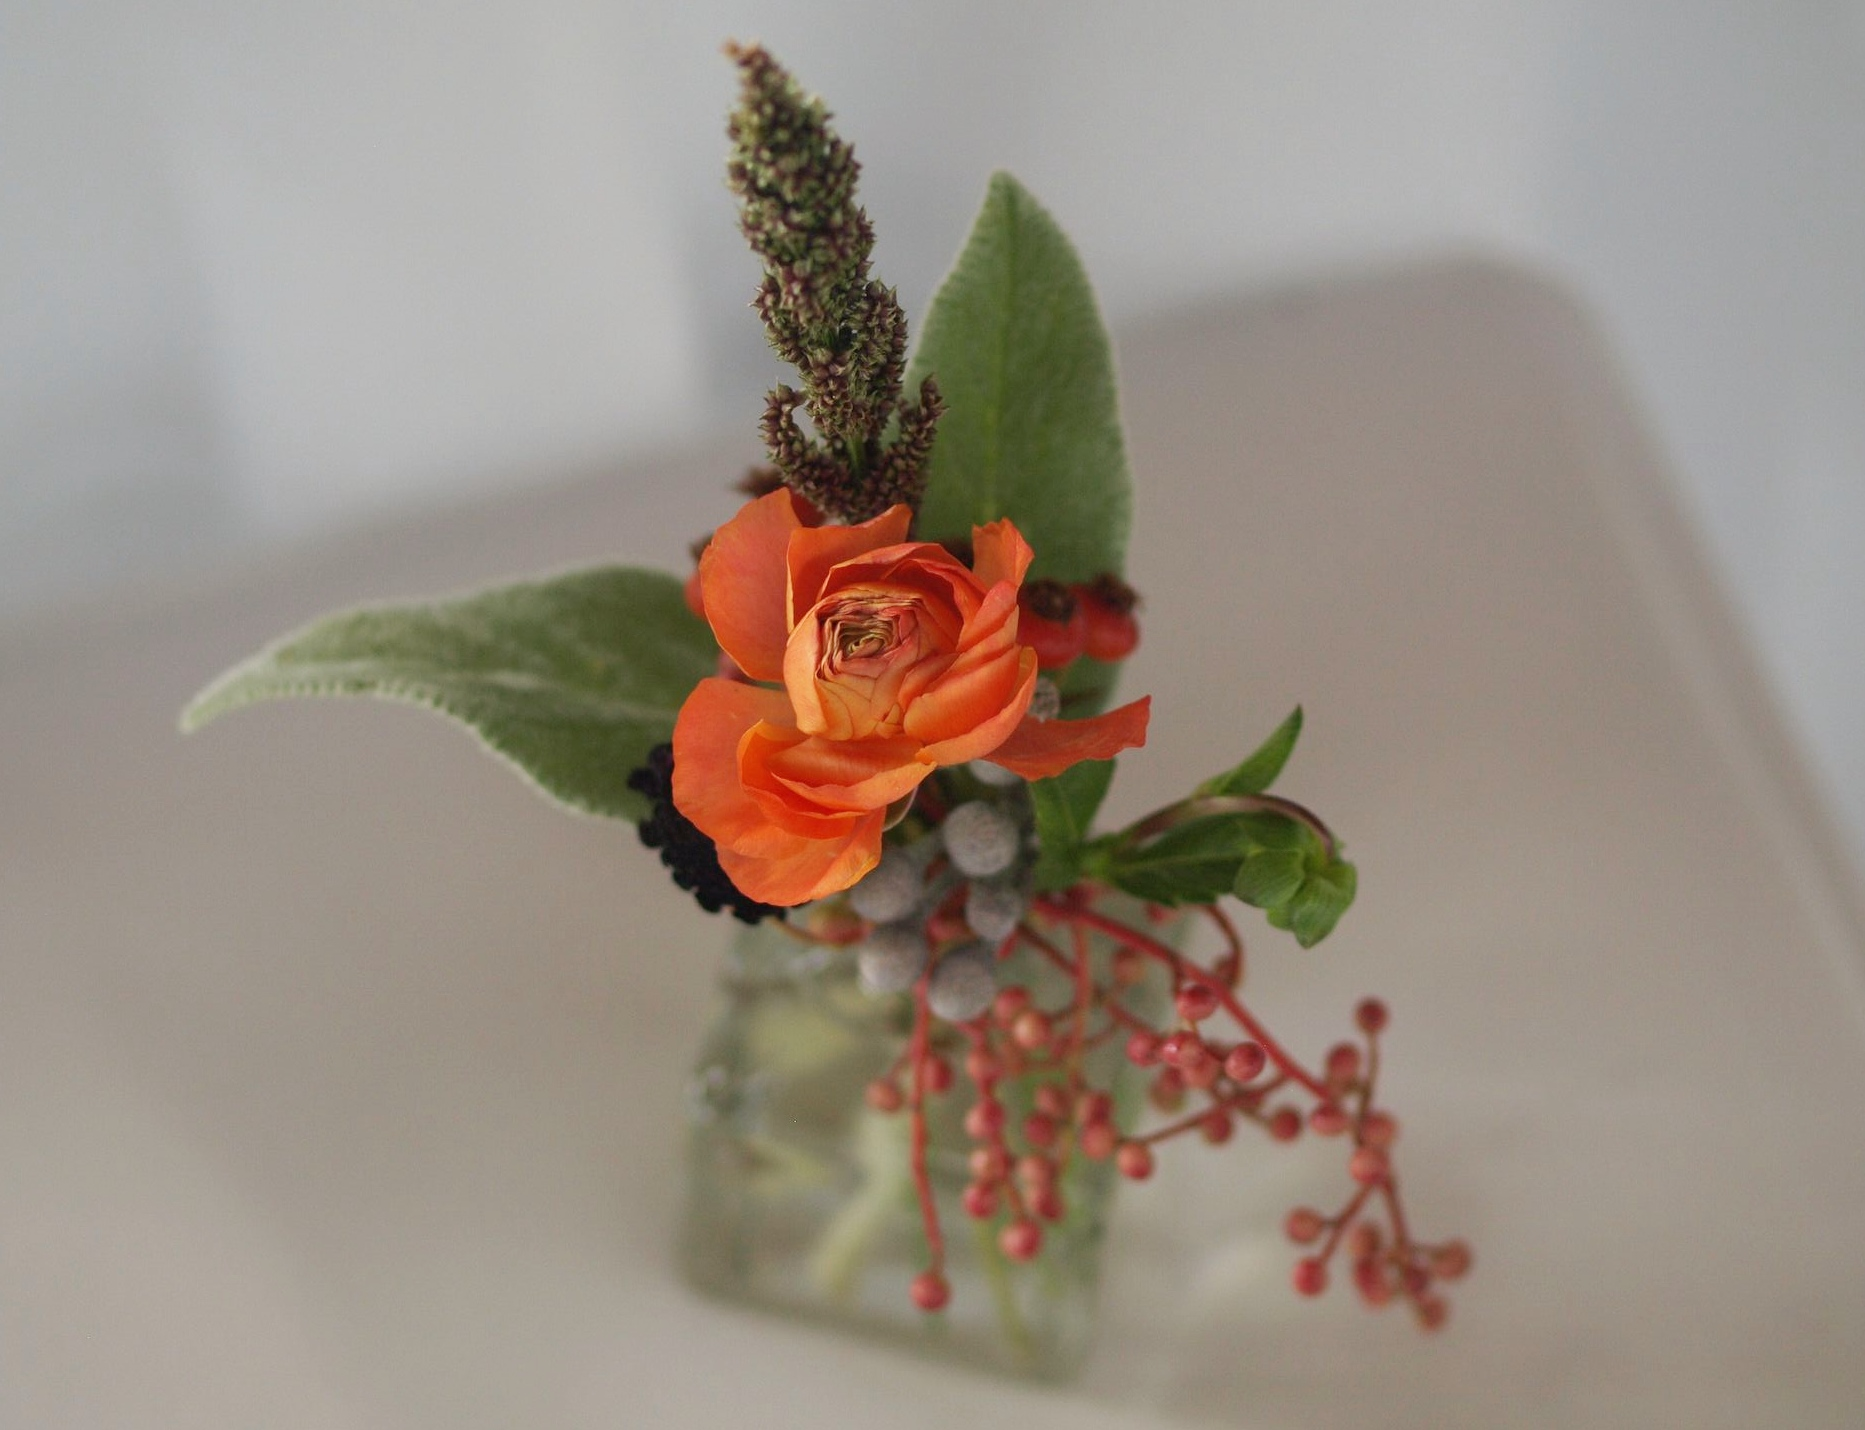 Oreonta house woodstock wedding bud vase with orange ranunculous, lambs ears, grey brunia, red berries and red rosehips and wildflowers rosehip social rosehip floral.jpg